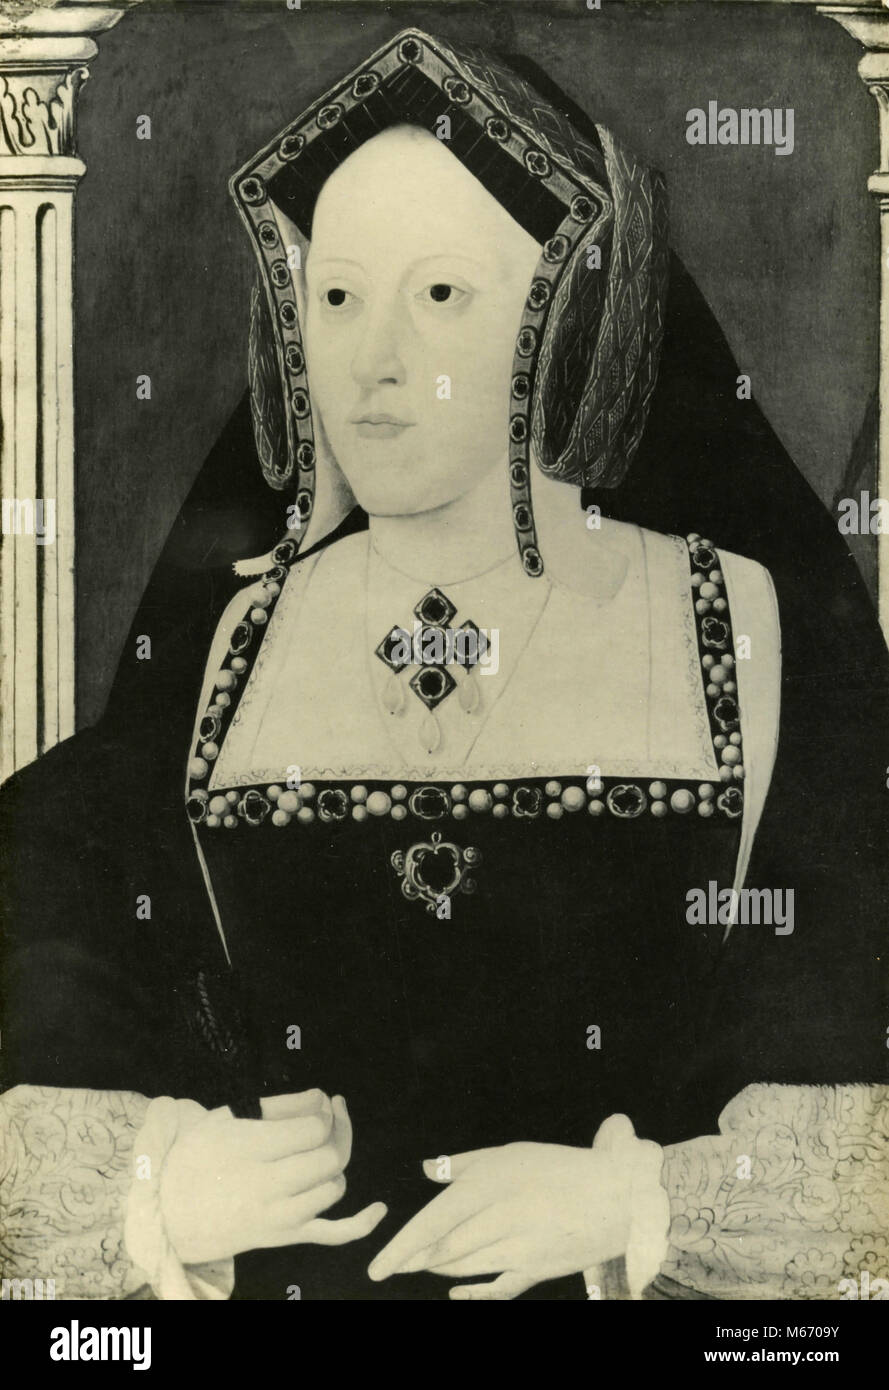 Portrait of Katharine of Aragon, daughter of Ferdinand and Isabella of Spain - Stock Image